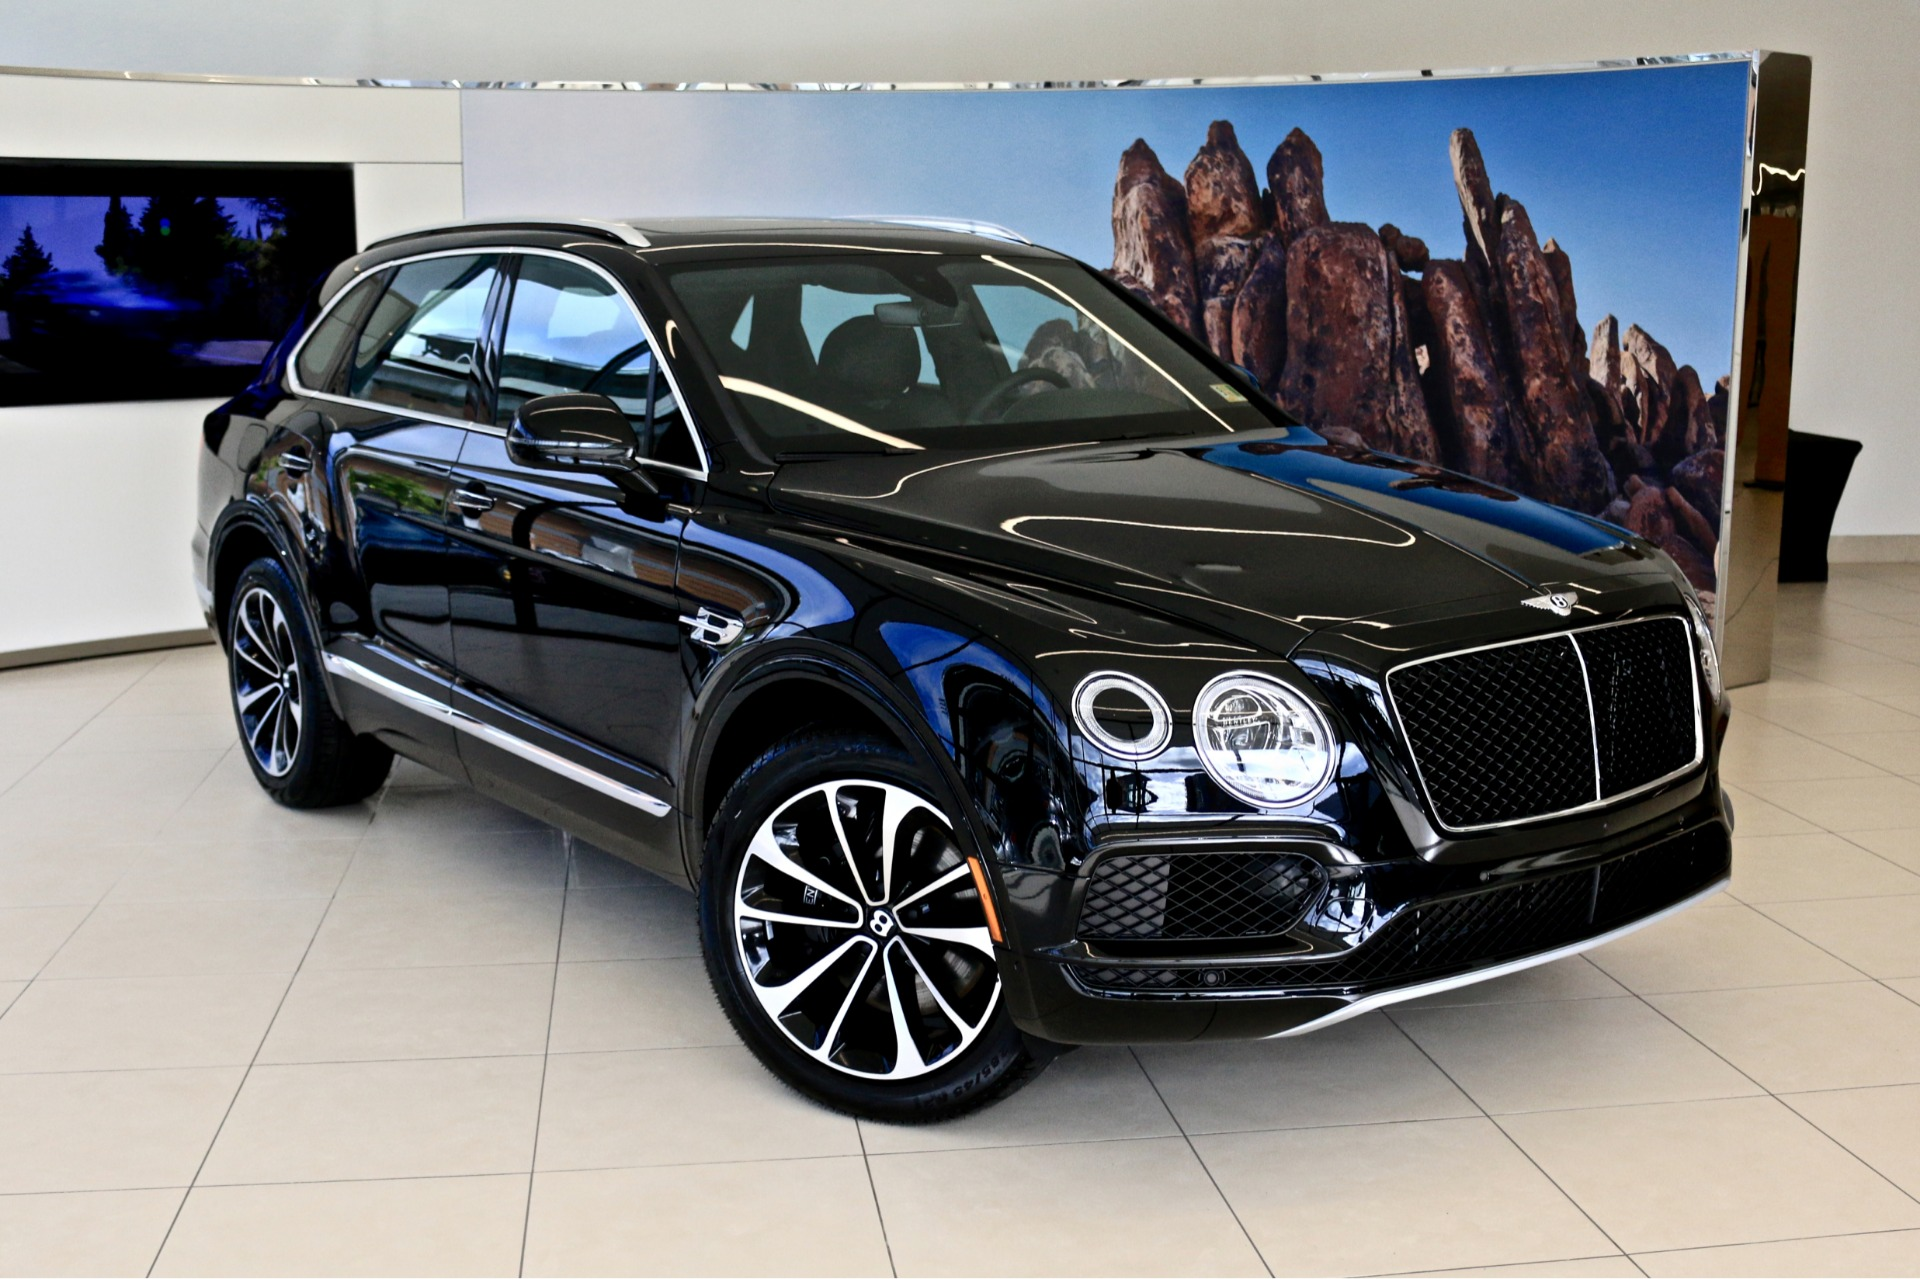 2019 Bentley Bentayga V8 Stock 9n024291 For Sale Near Vienna Va Va Bentley Dealer For Sale In Vienna Va 9n024291 Exclusive Automotive Group